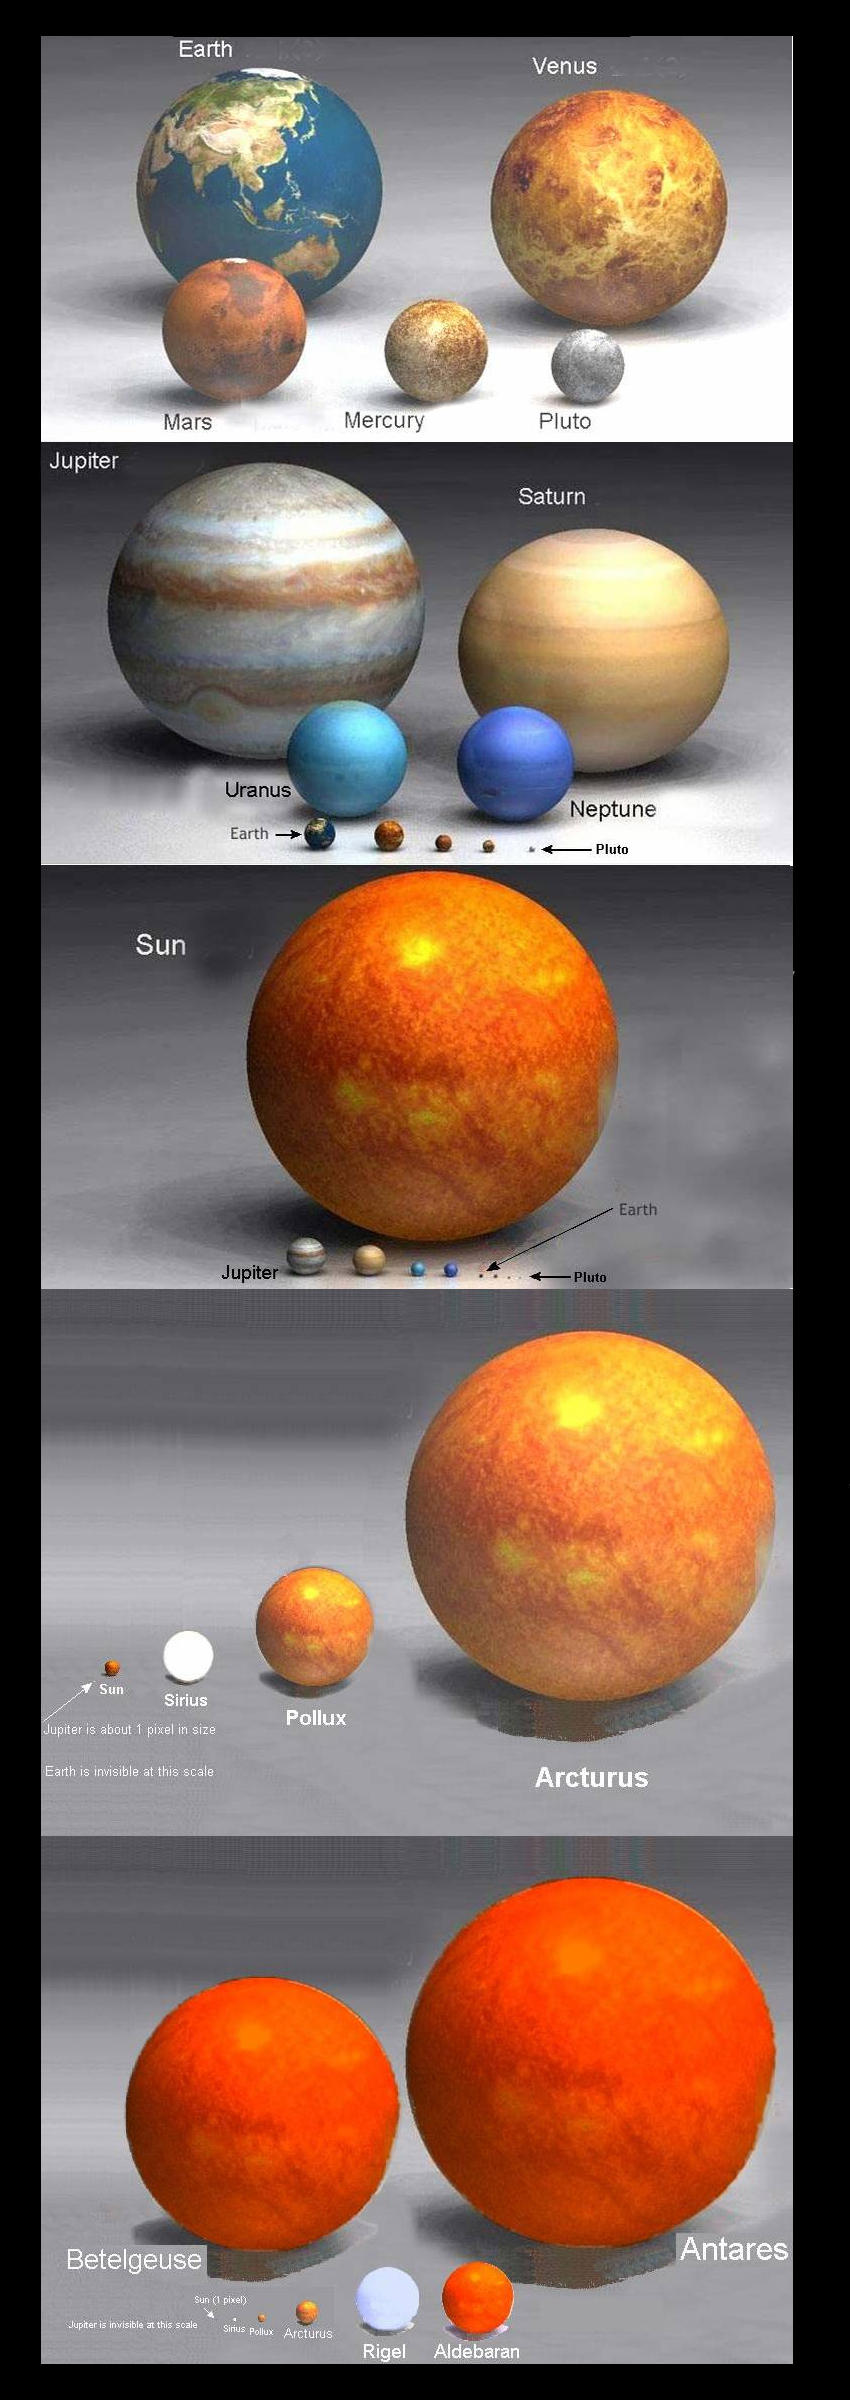 real earth comparison to other planets - photo #37